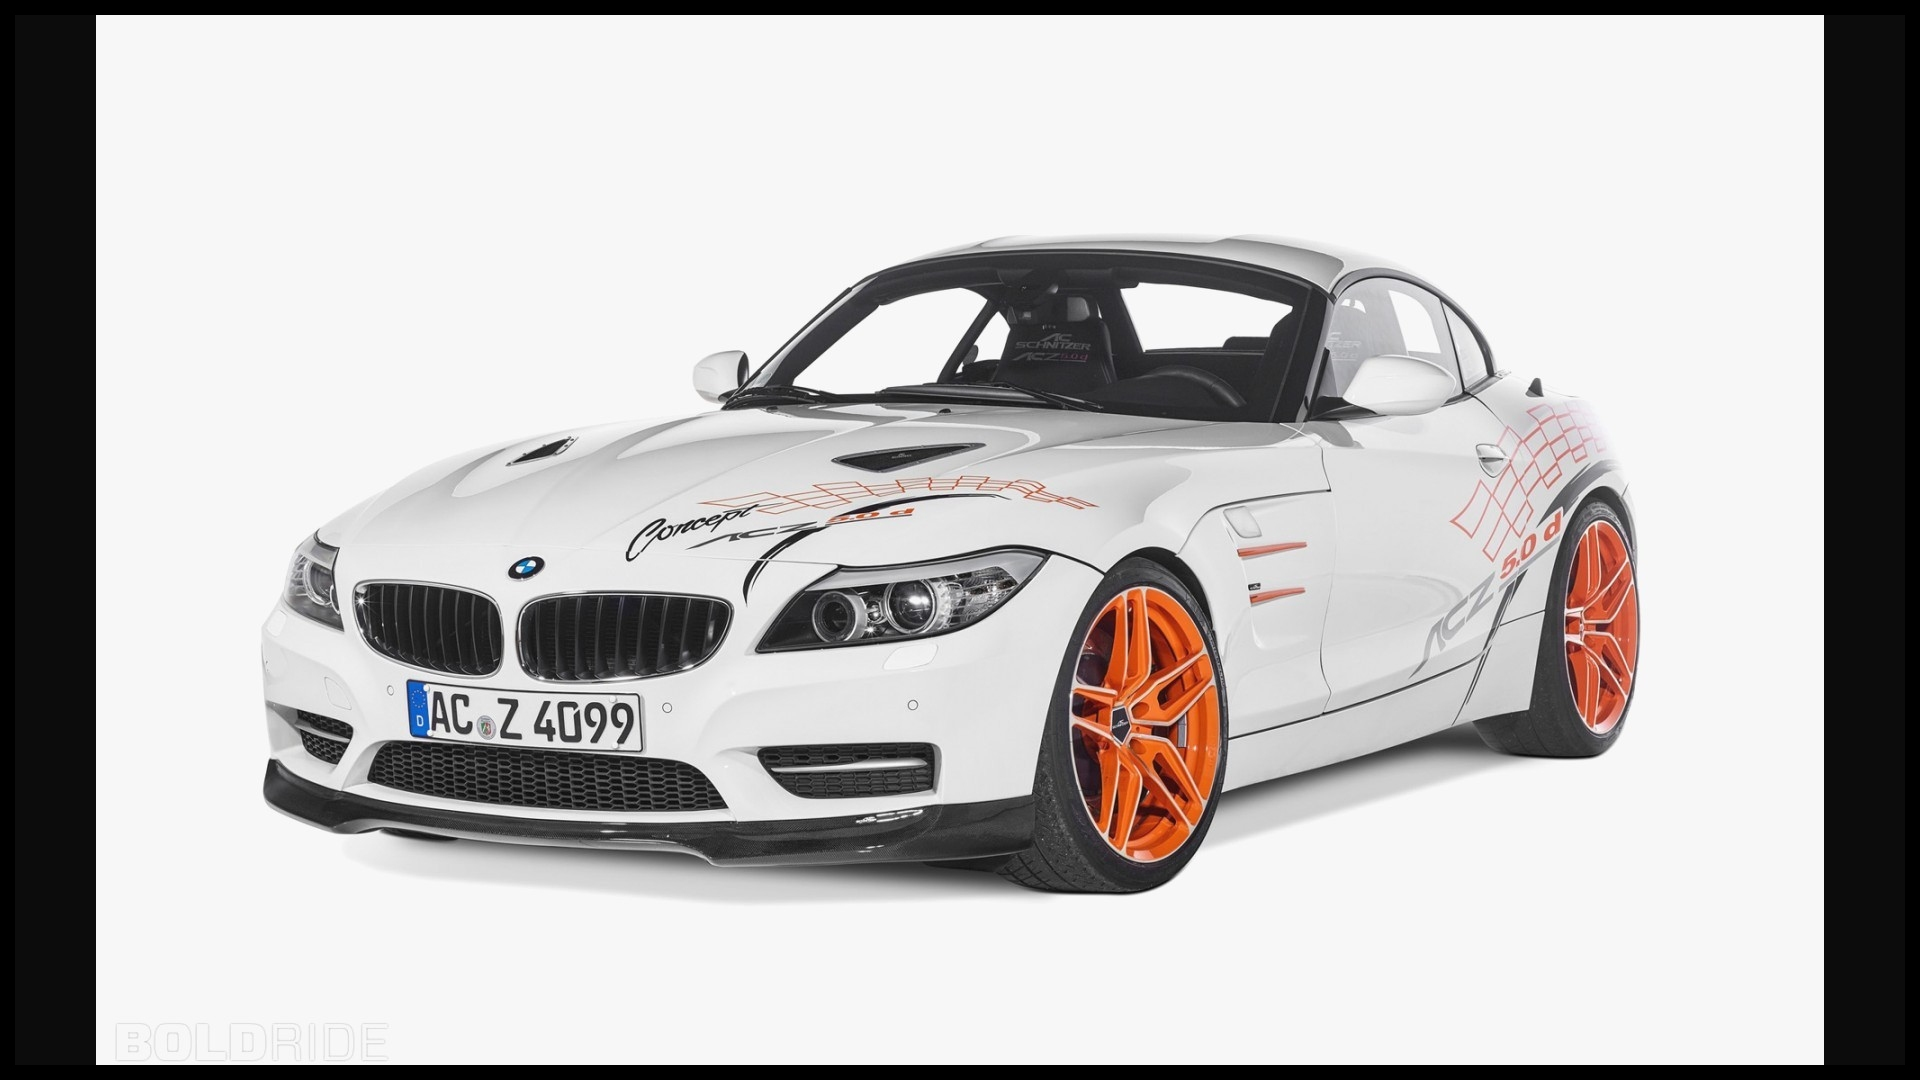 Bmw Car New Elegant Ac Schnitzer Bmw Z4 Acz4 5 0d Car Wallpaper Hd